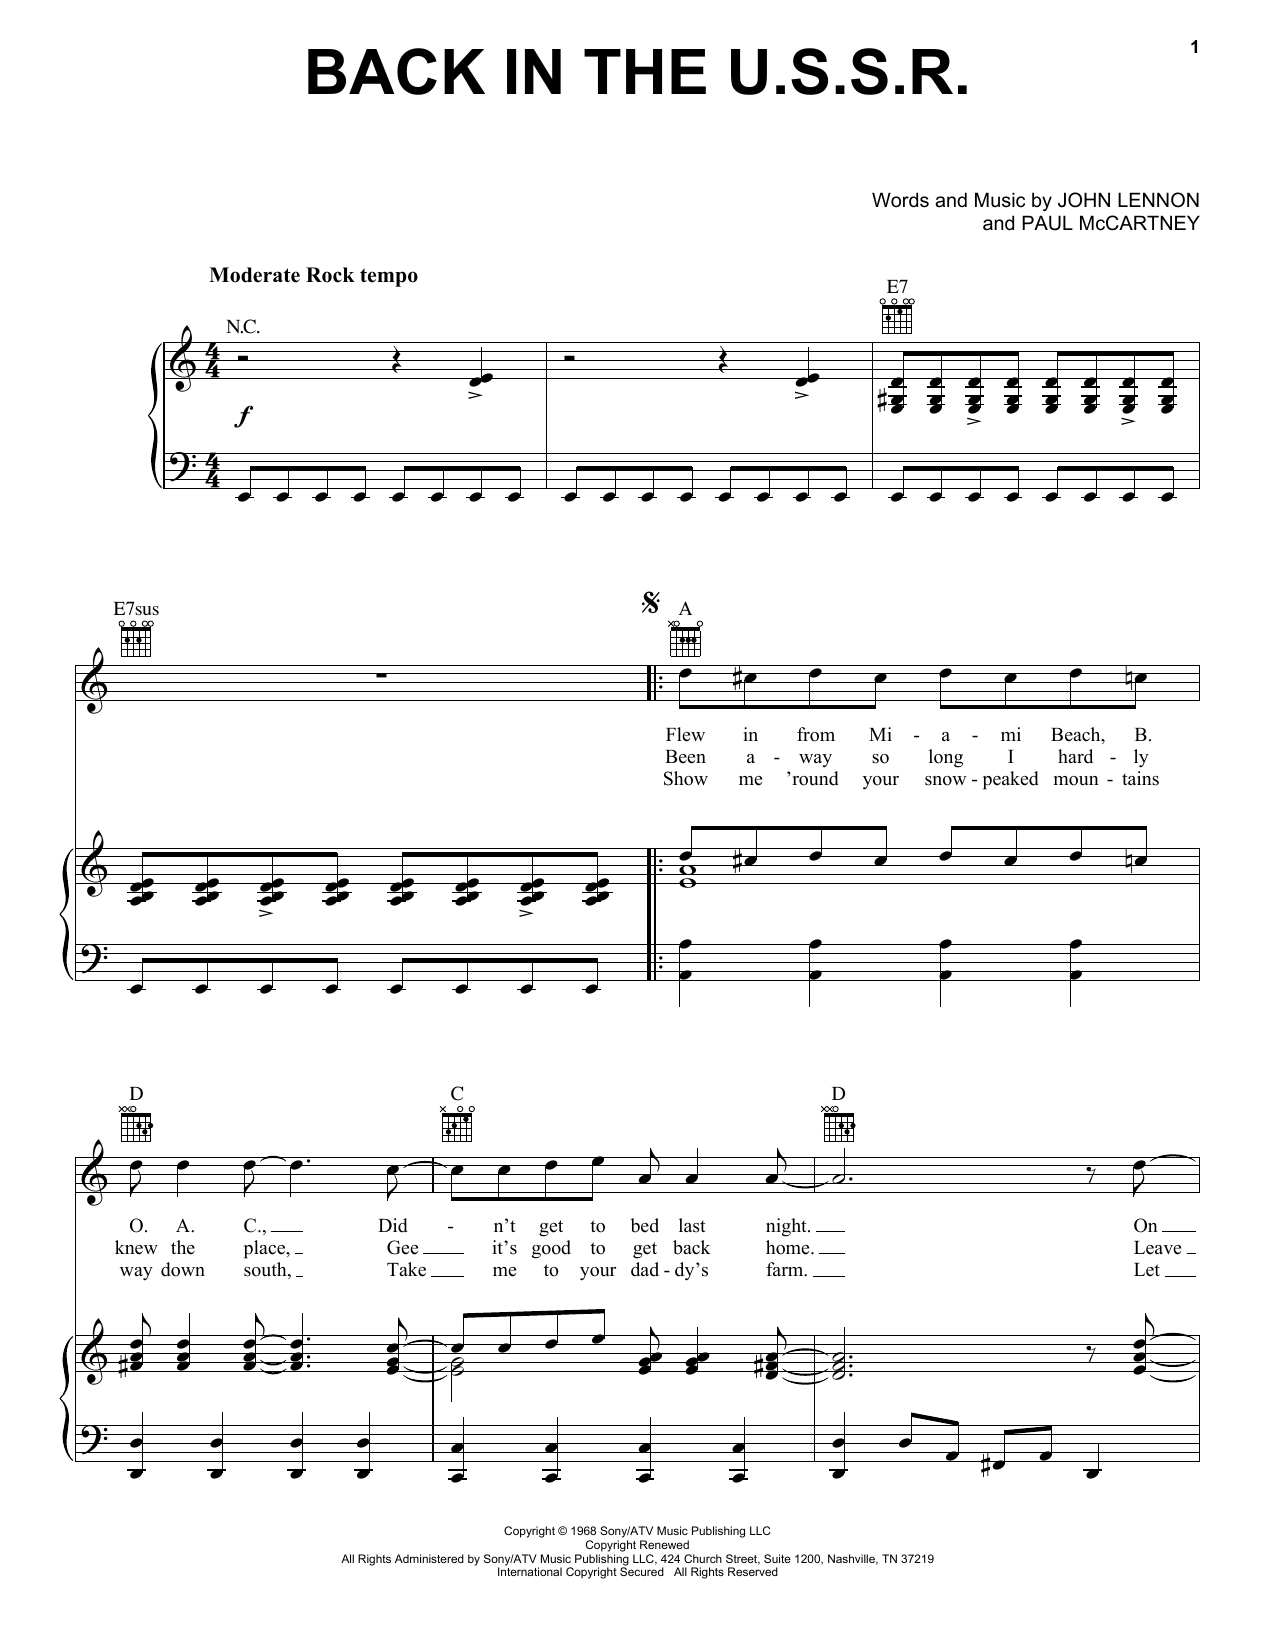 The Beatles Back In The U.S.S.R. sheet music notes printable PDF score